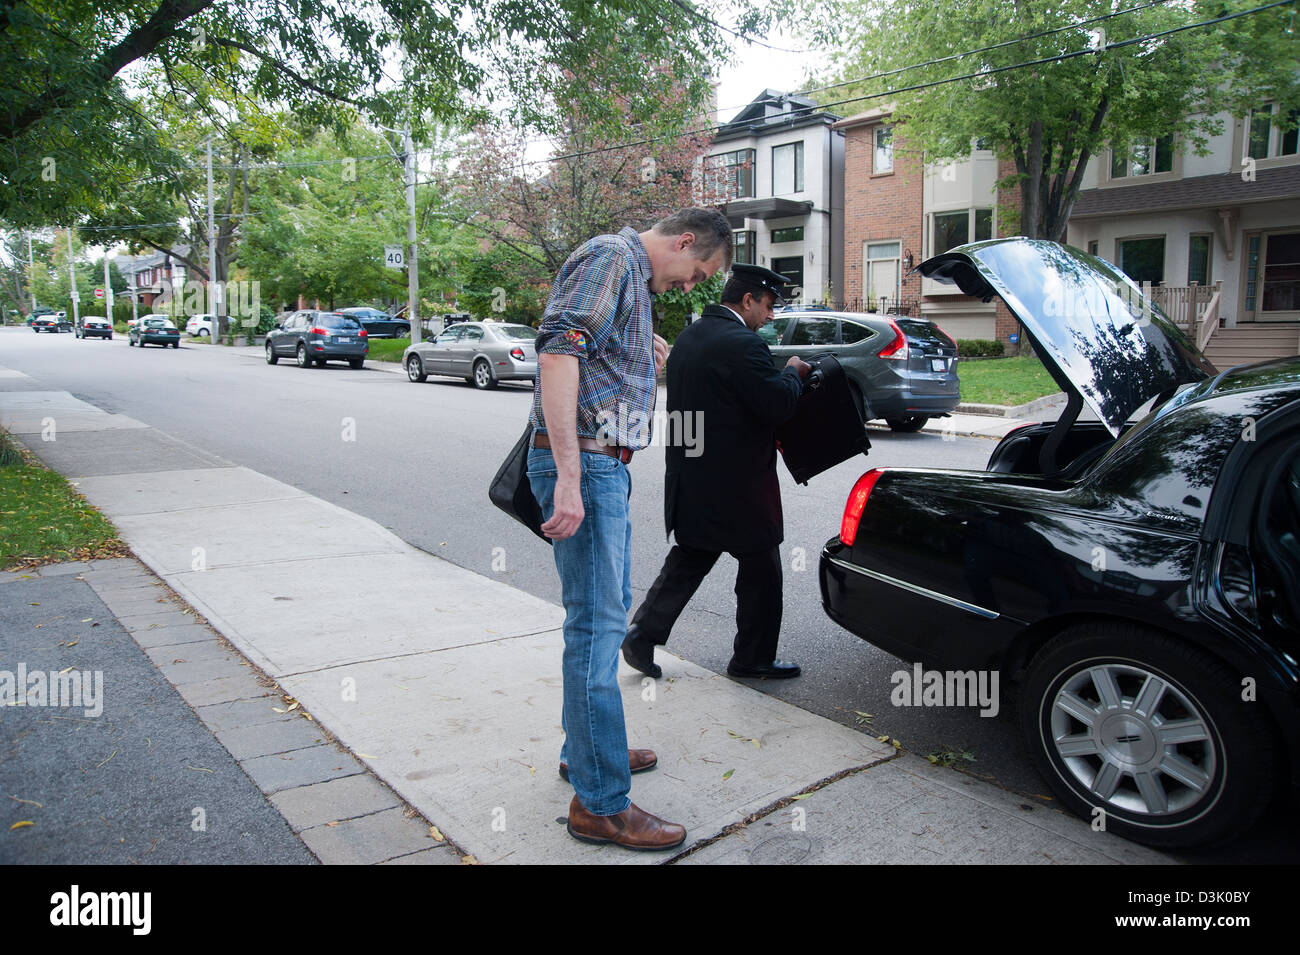 A man waits on sidewalk while uniformed limousine driver puts his luggage in trunk of car - Stock Image